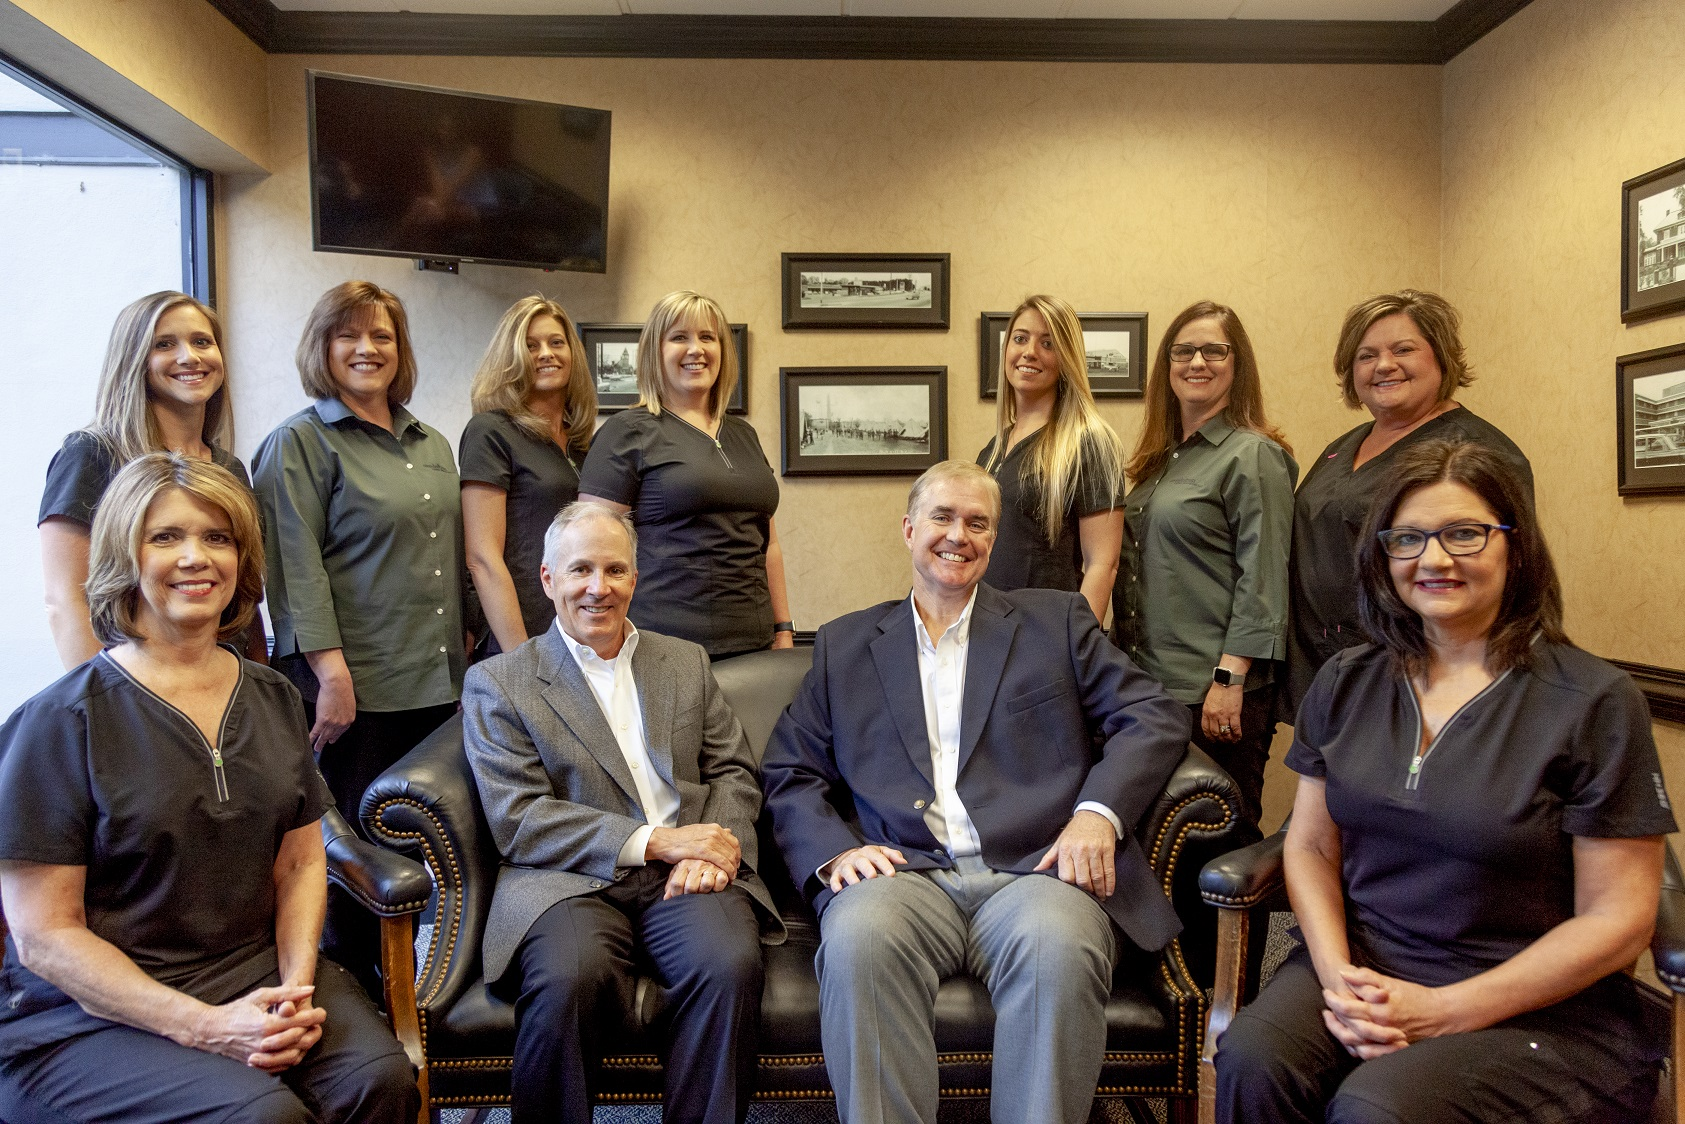 Coombs and Ross Family Dentistry